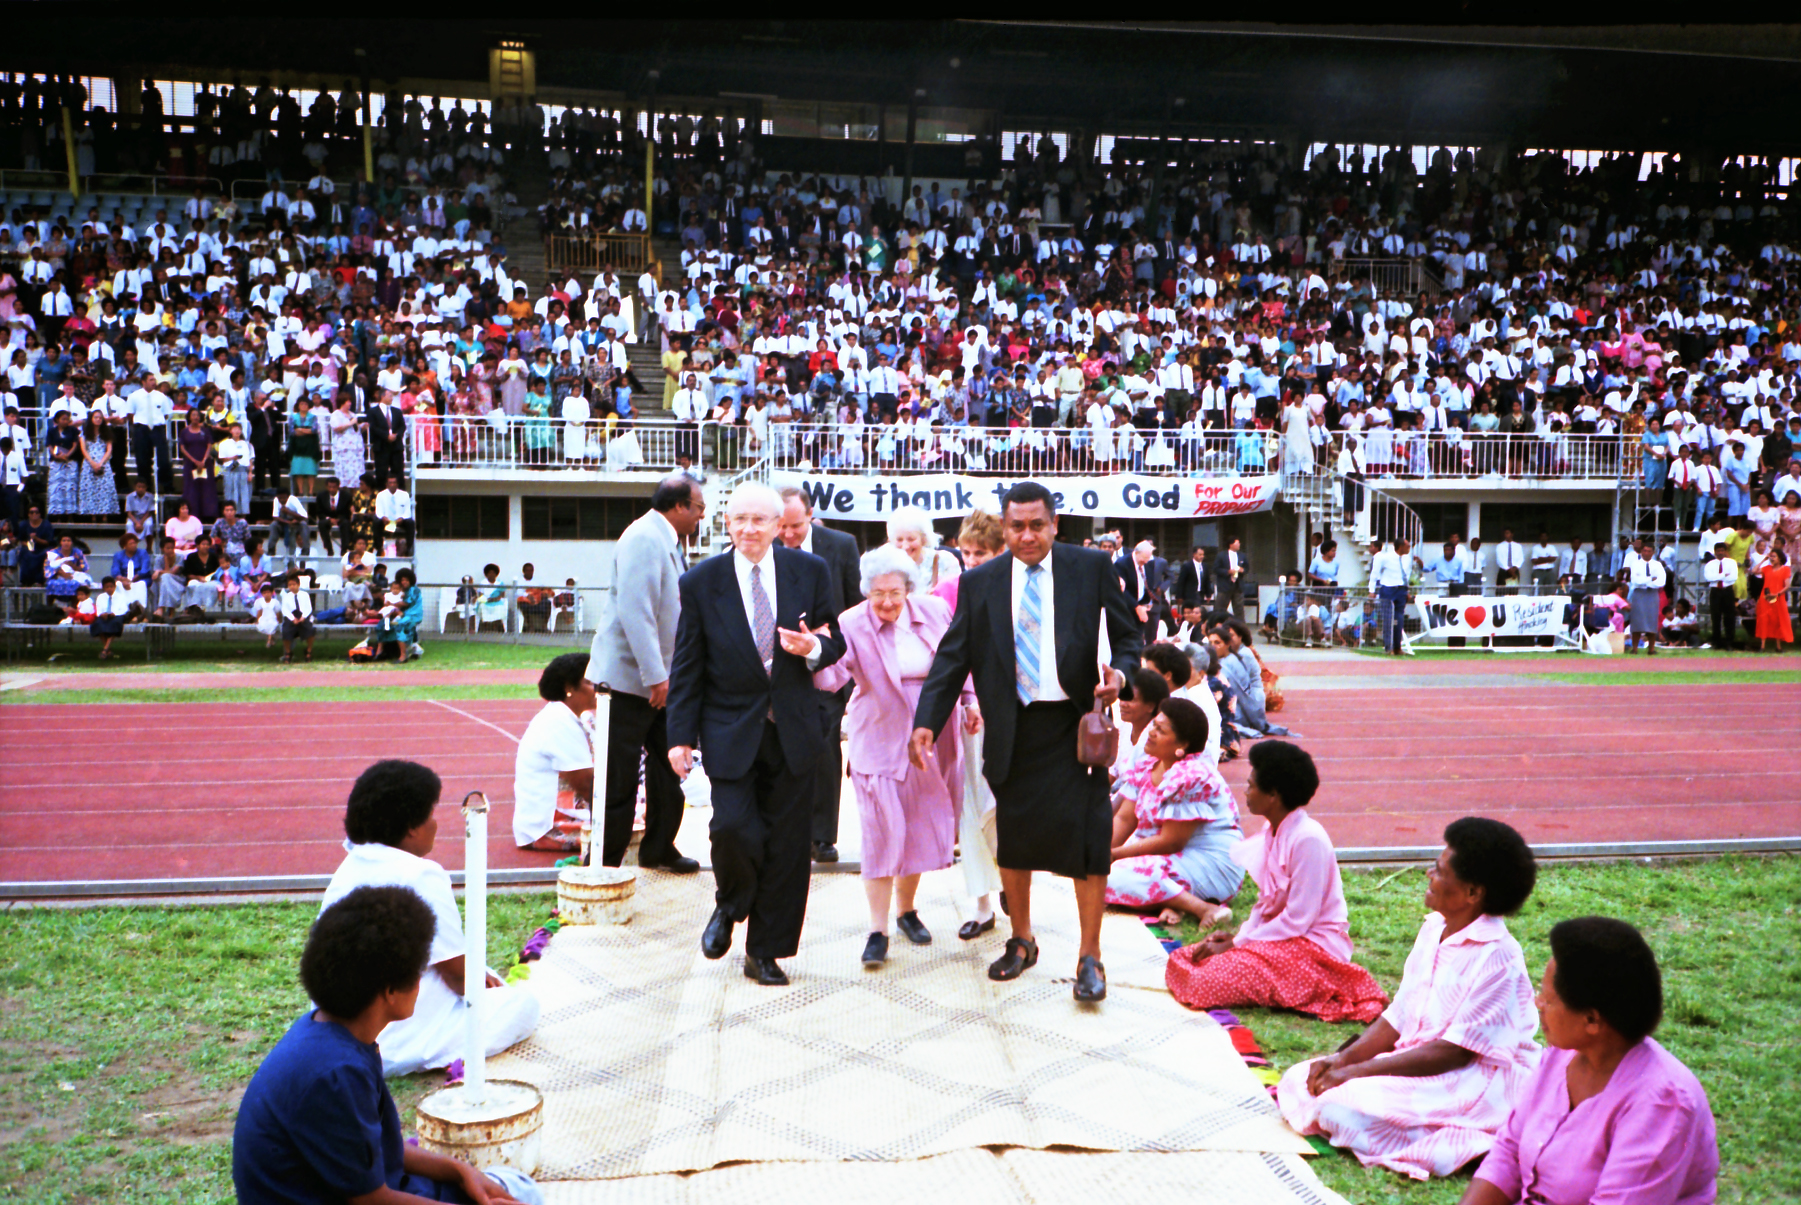 President Gordon B. Hinckley and his wife, Sister Marjorie P. Hinckley, enter National Stadium in Suva, Fiji, on Oct. 15, 1997. They are escorted by one of Fiji's first members of the Church, Joseph Sokia. Fiji was one of eight islands of the Pacific that President Hinckley visited on a week-long tour.